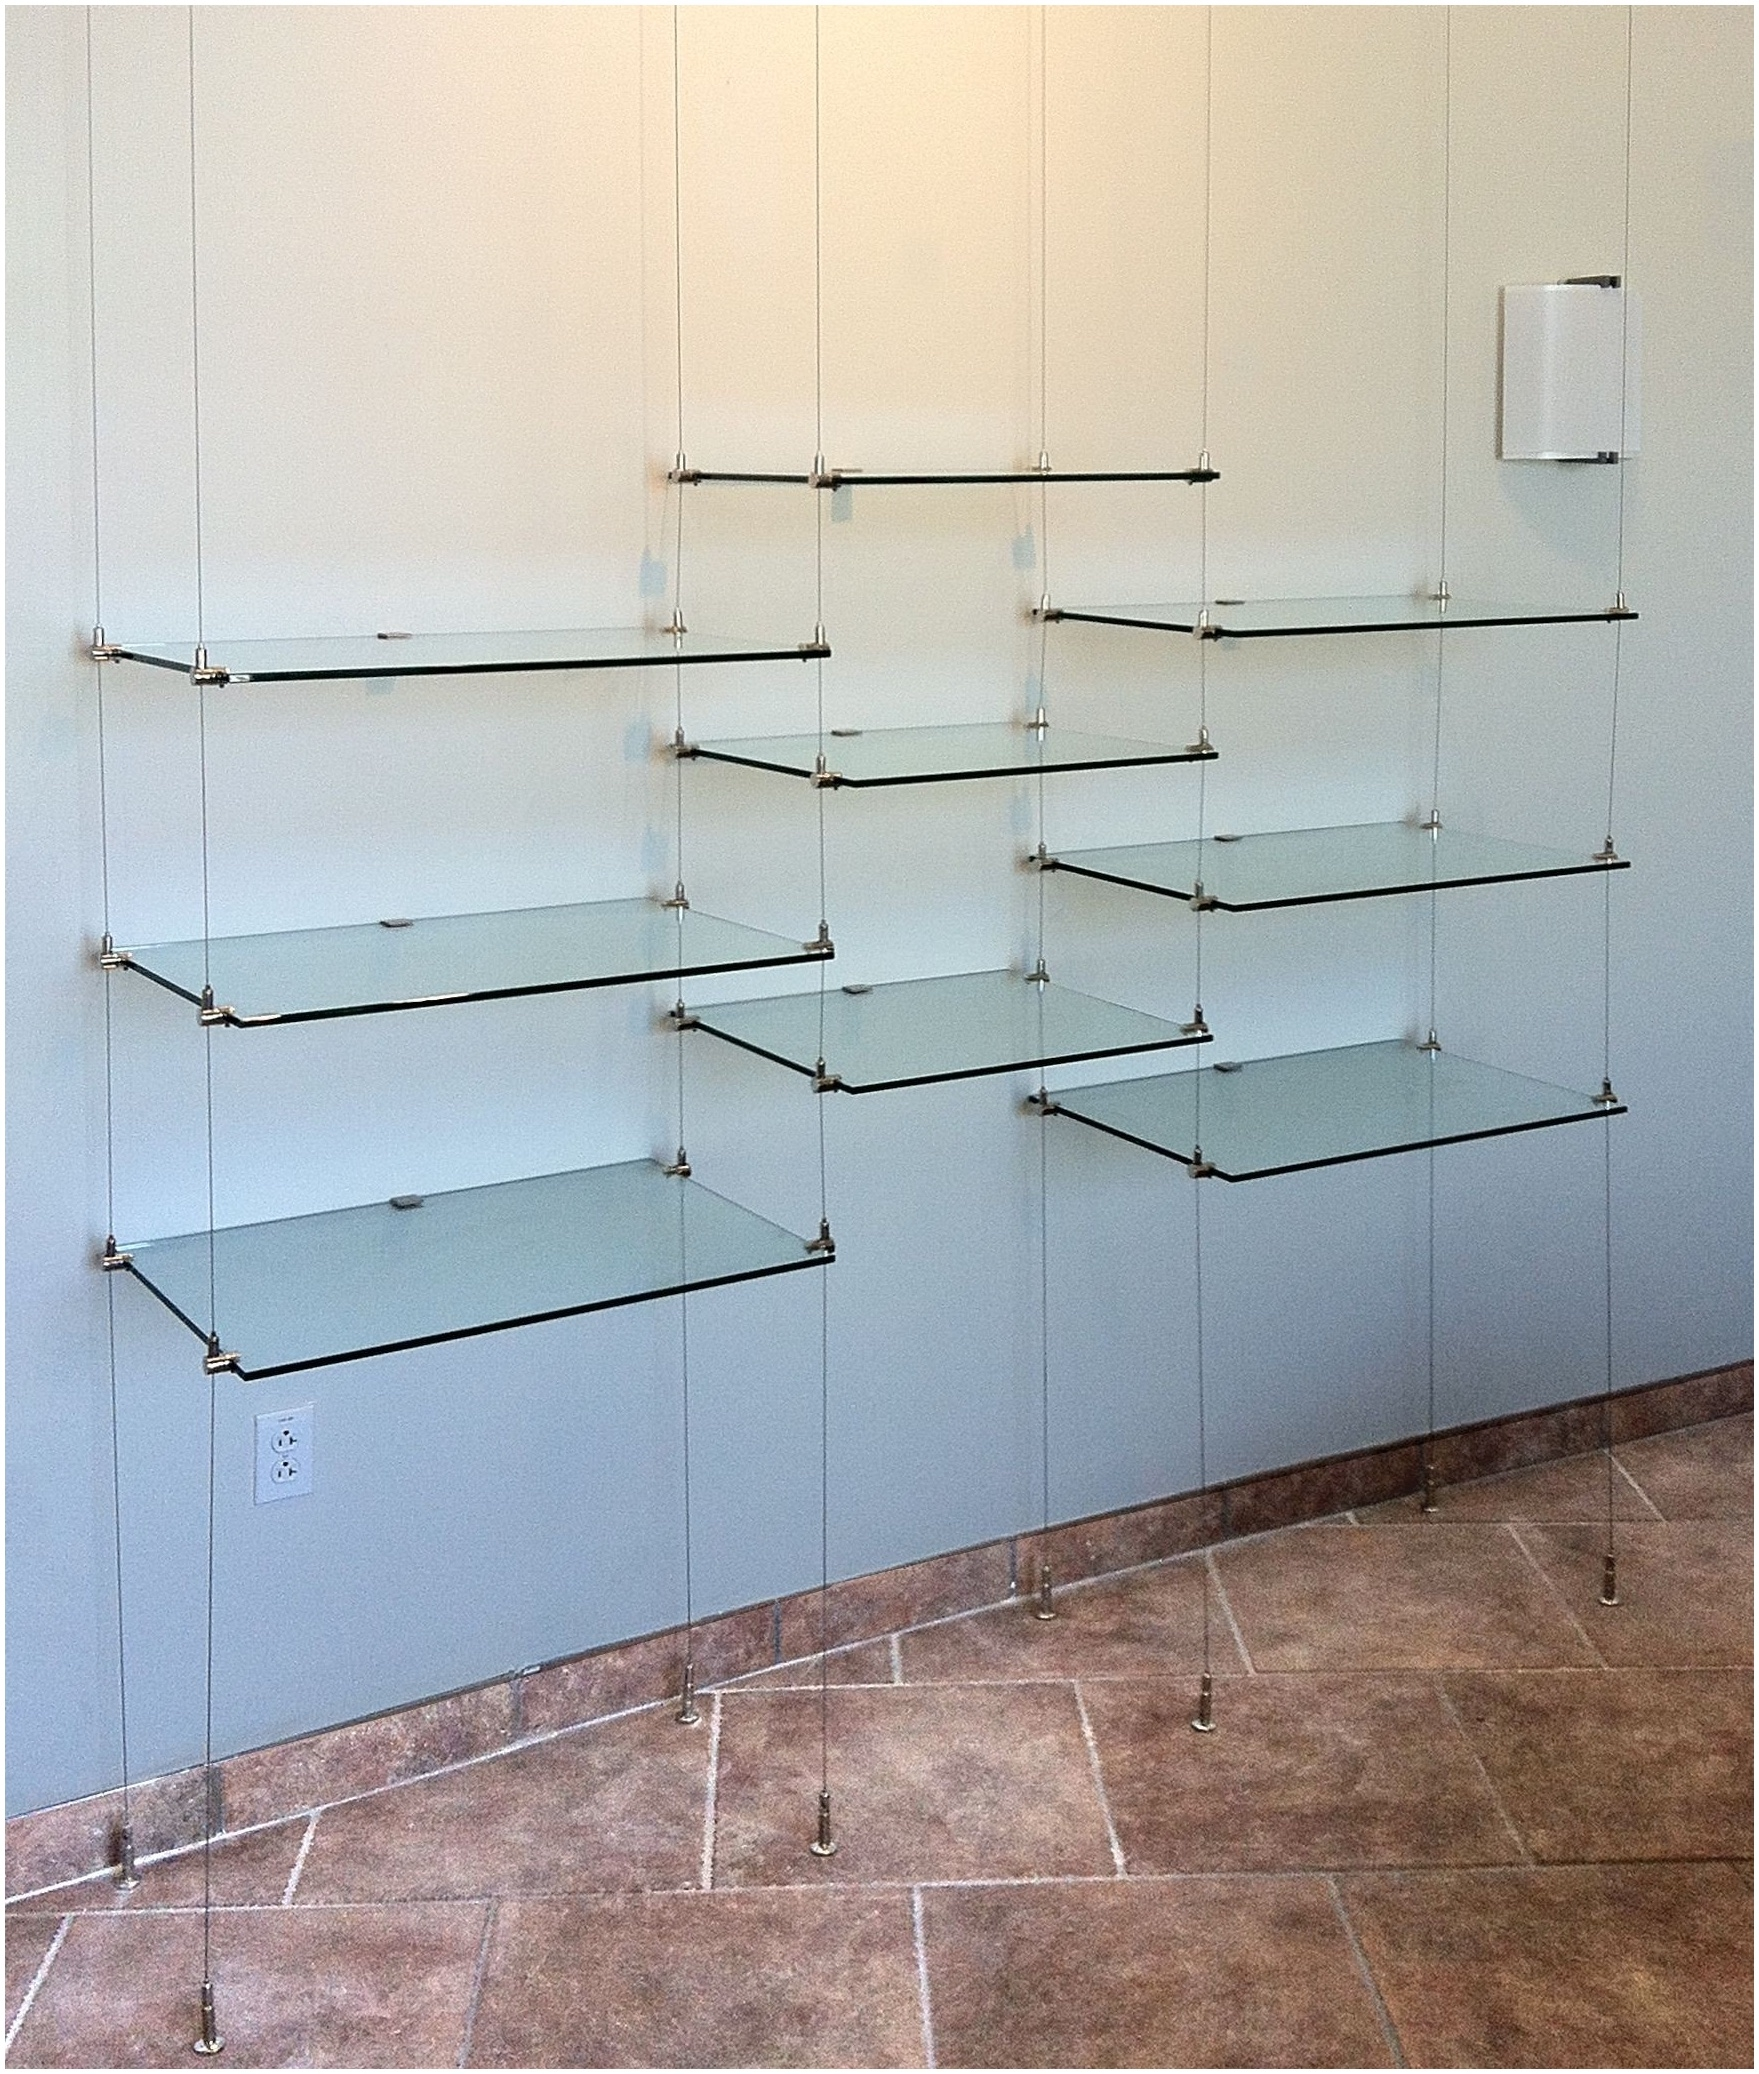 Suspended Glass Shelf 18 In Hanging Glass Shelf Hardware Ceiling Pertaining To Glass Suspension Shelves (Image 14 of 15)